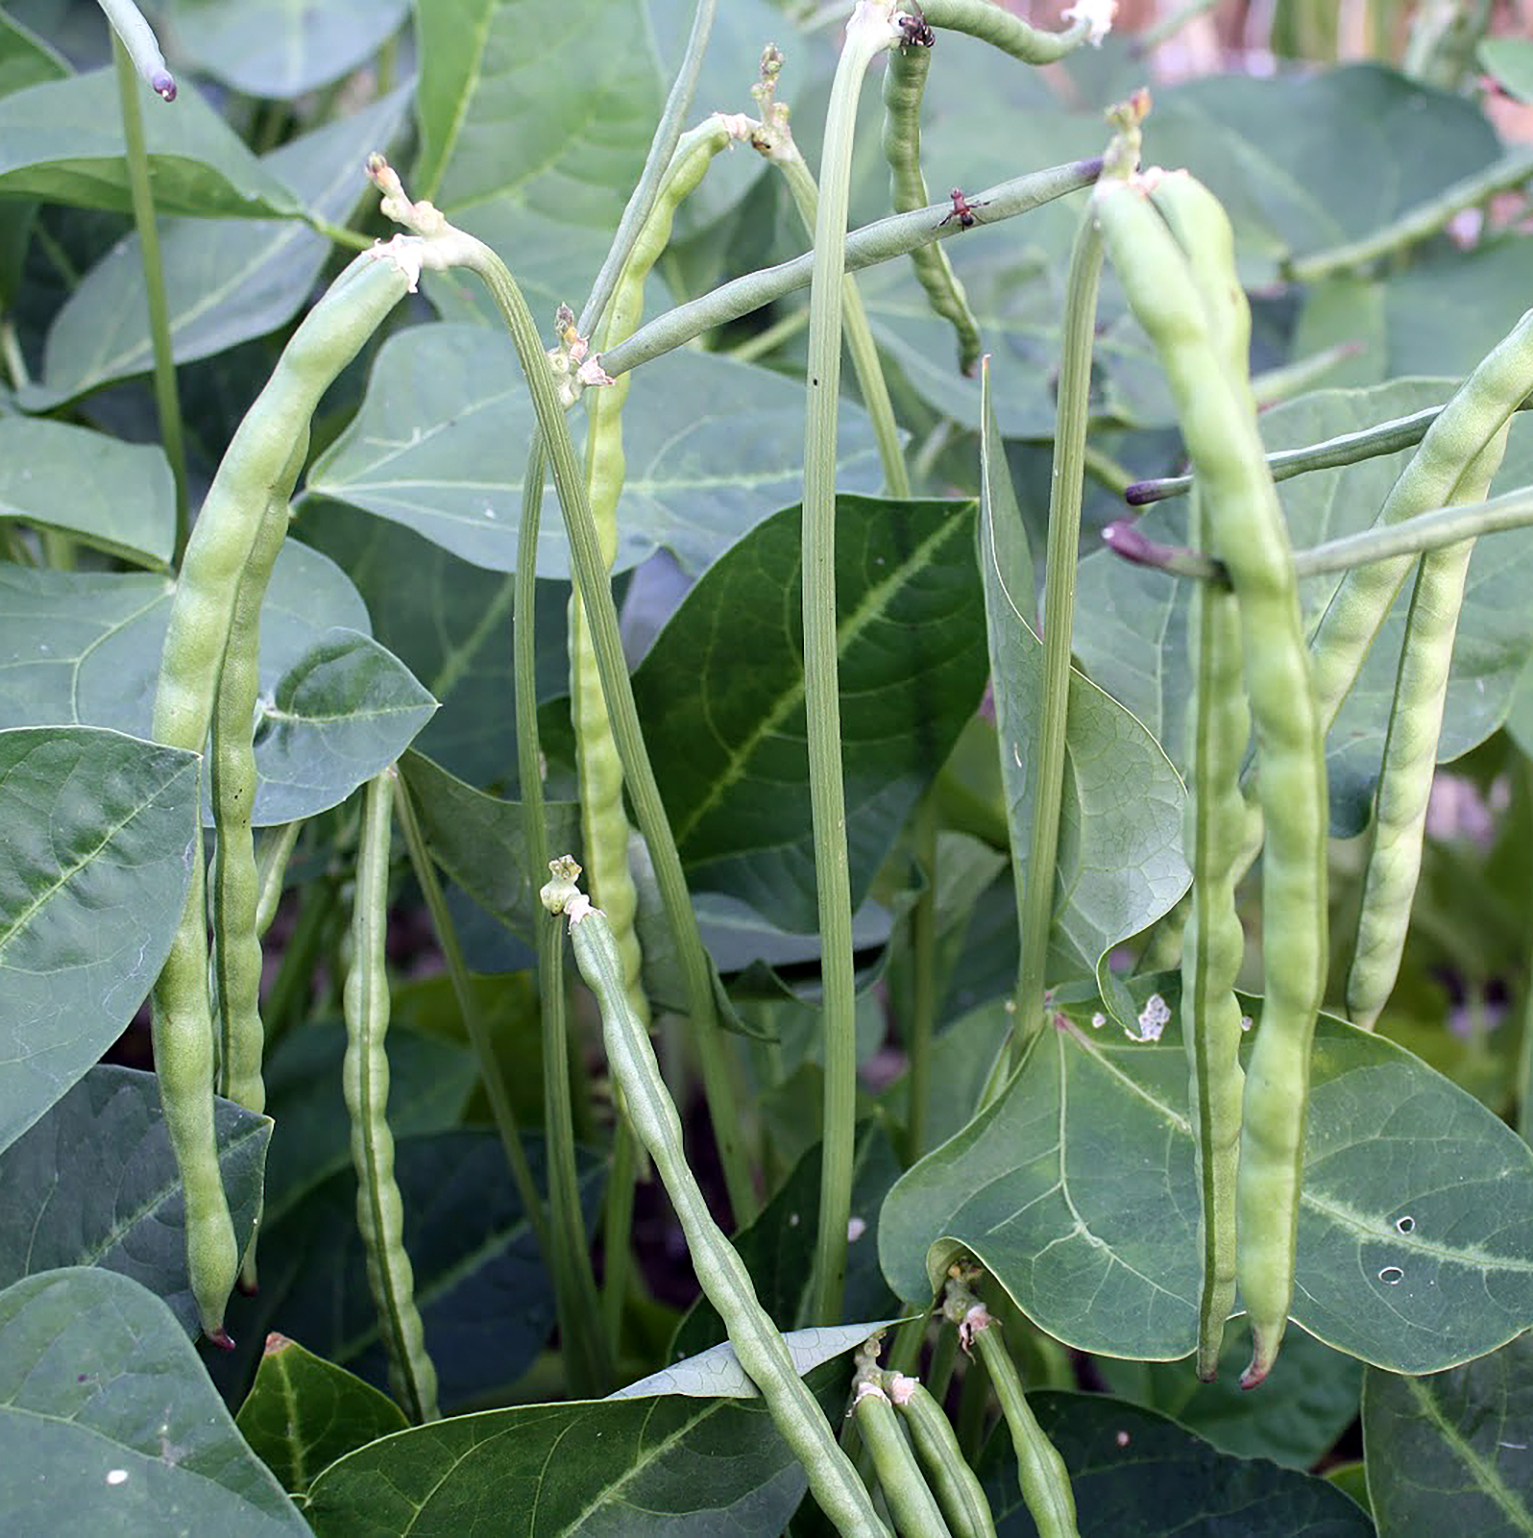 Damage caused by cowpea curculio on Southern peas.